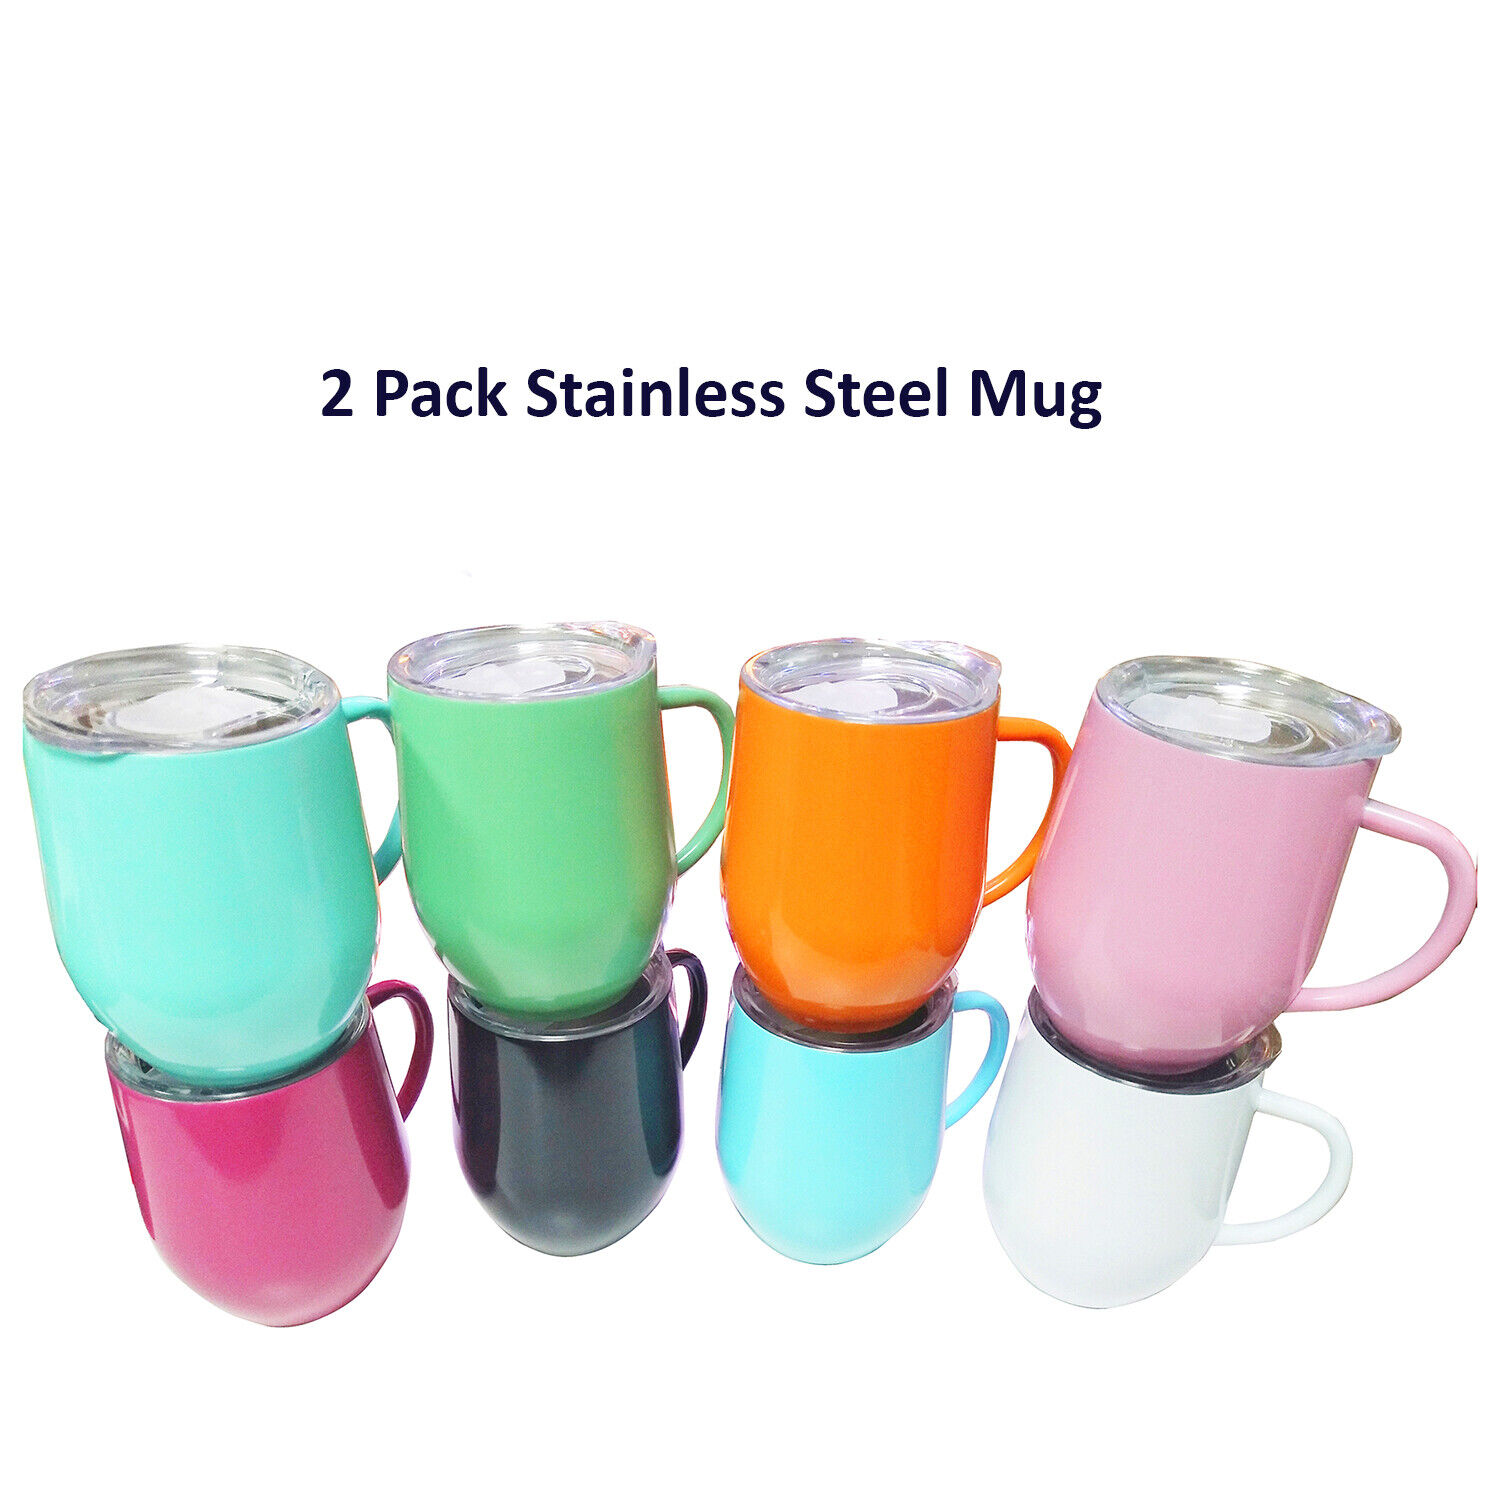 2 Pack 12 oz Stainless Steel Handle Mug Cup with Lid Duoble